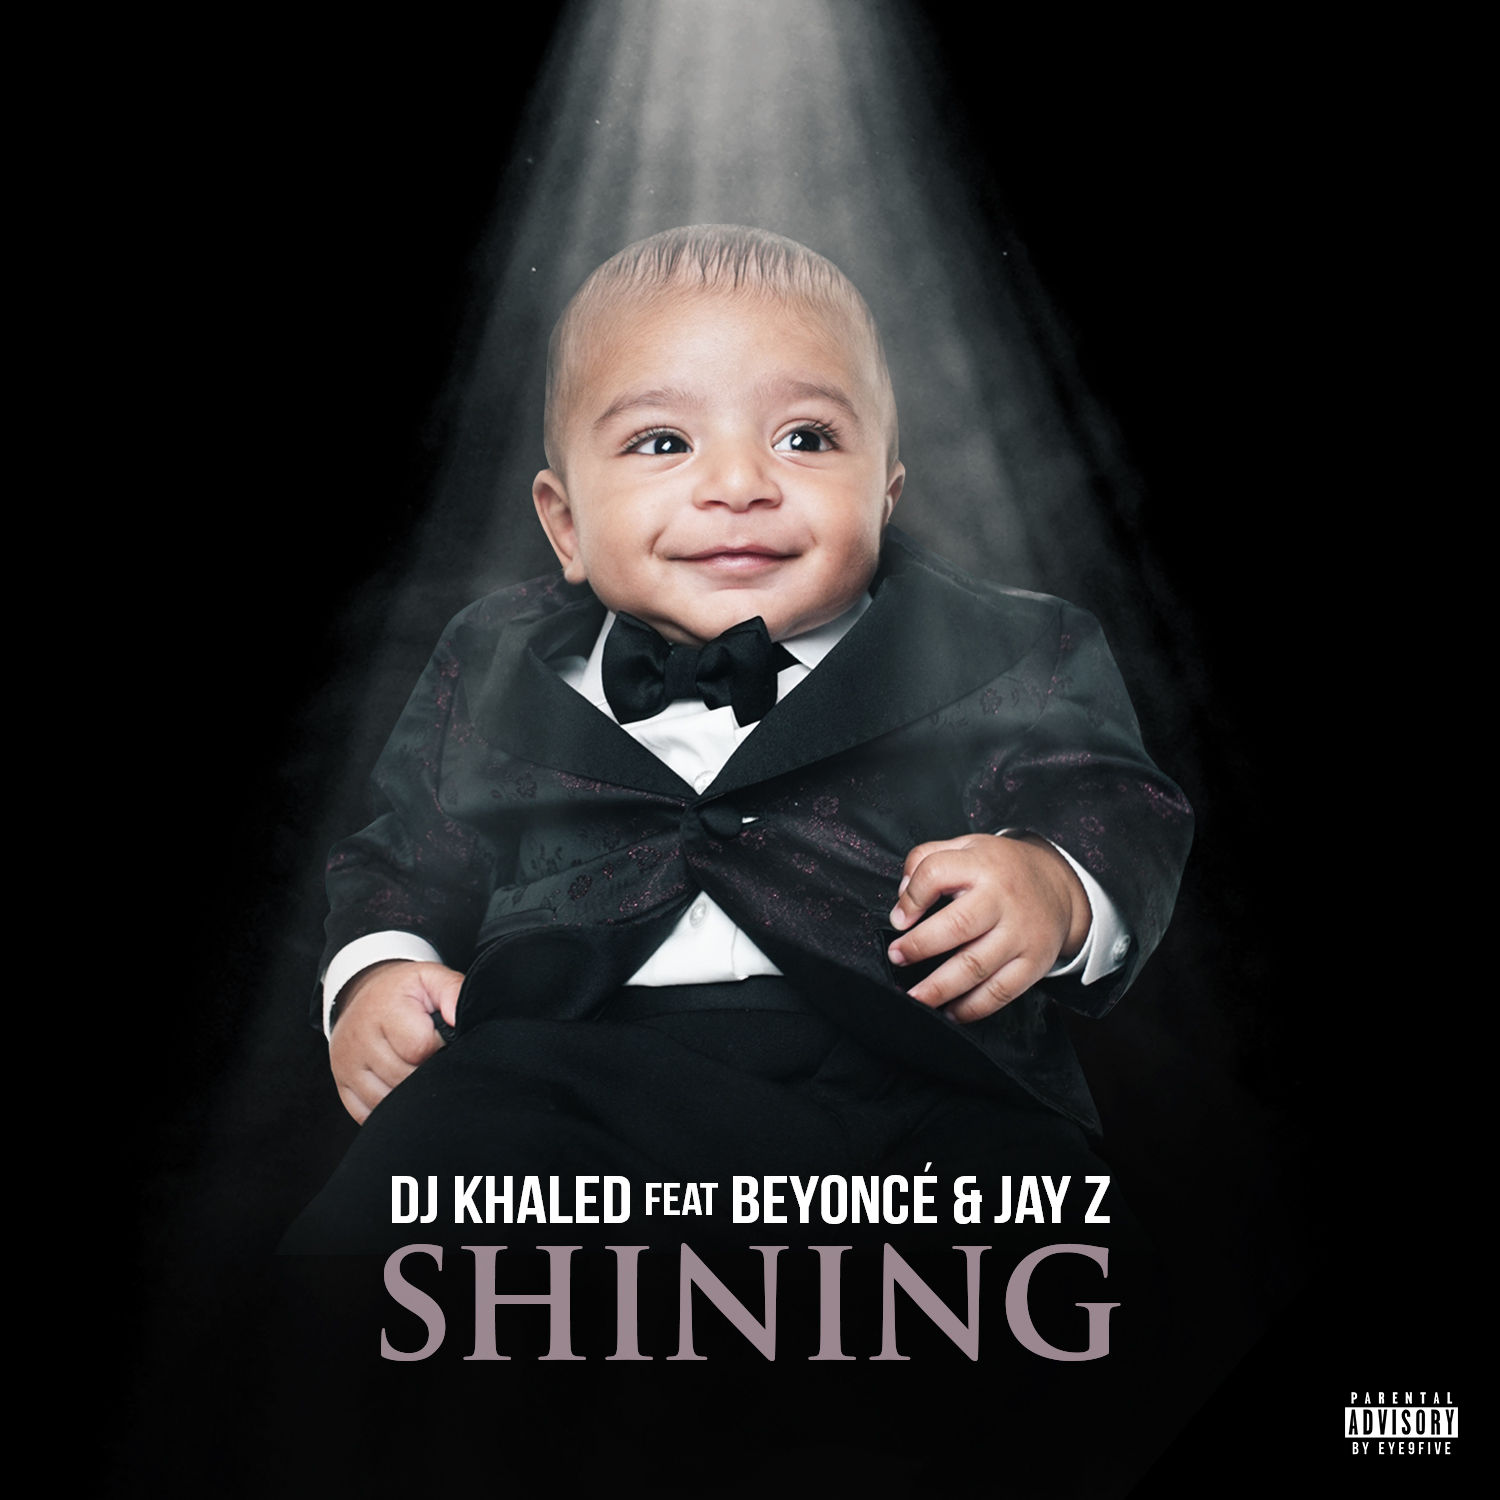 DJ Khaled Drops 'Shining' Collaboration With Beyonce, Jay Z